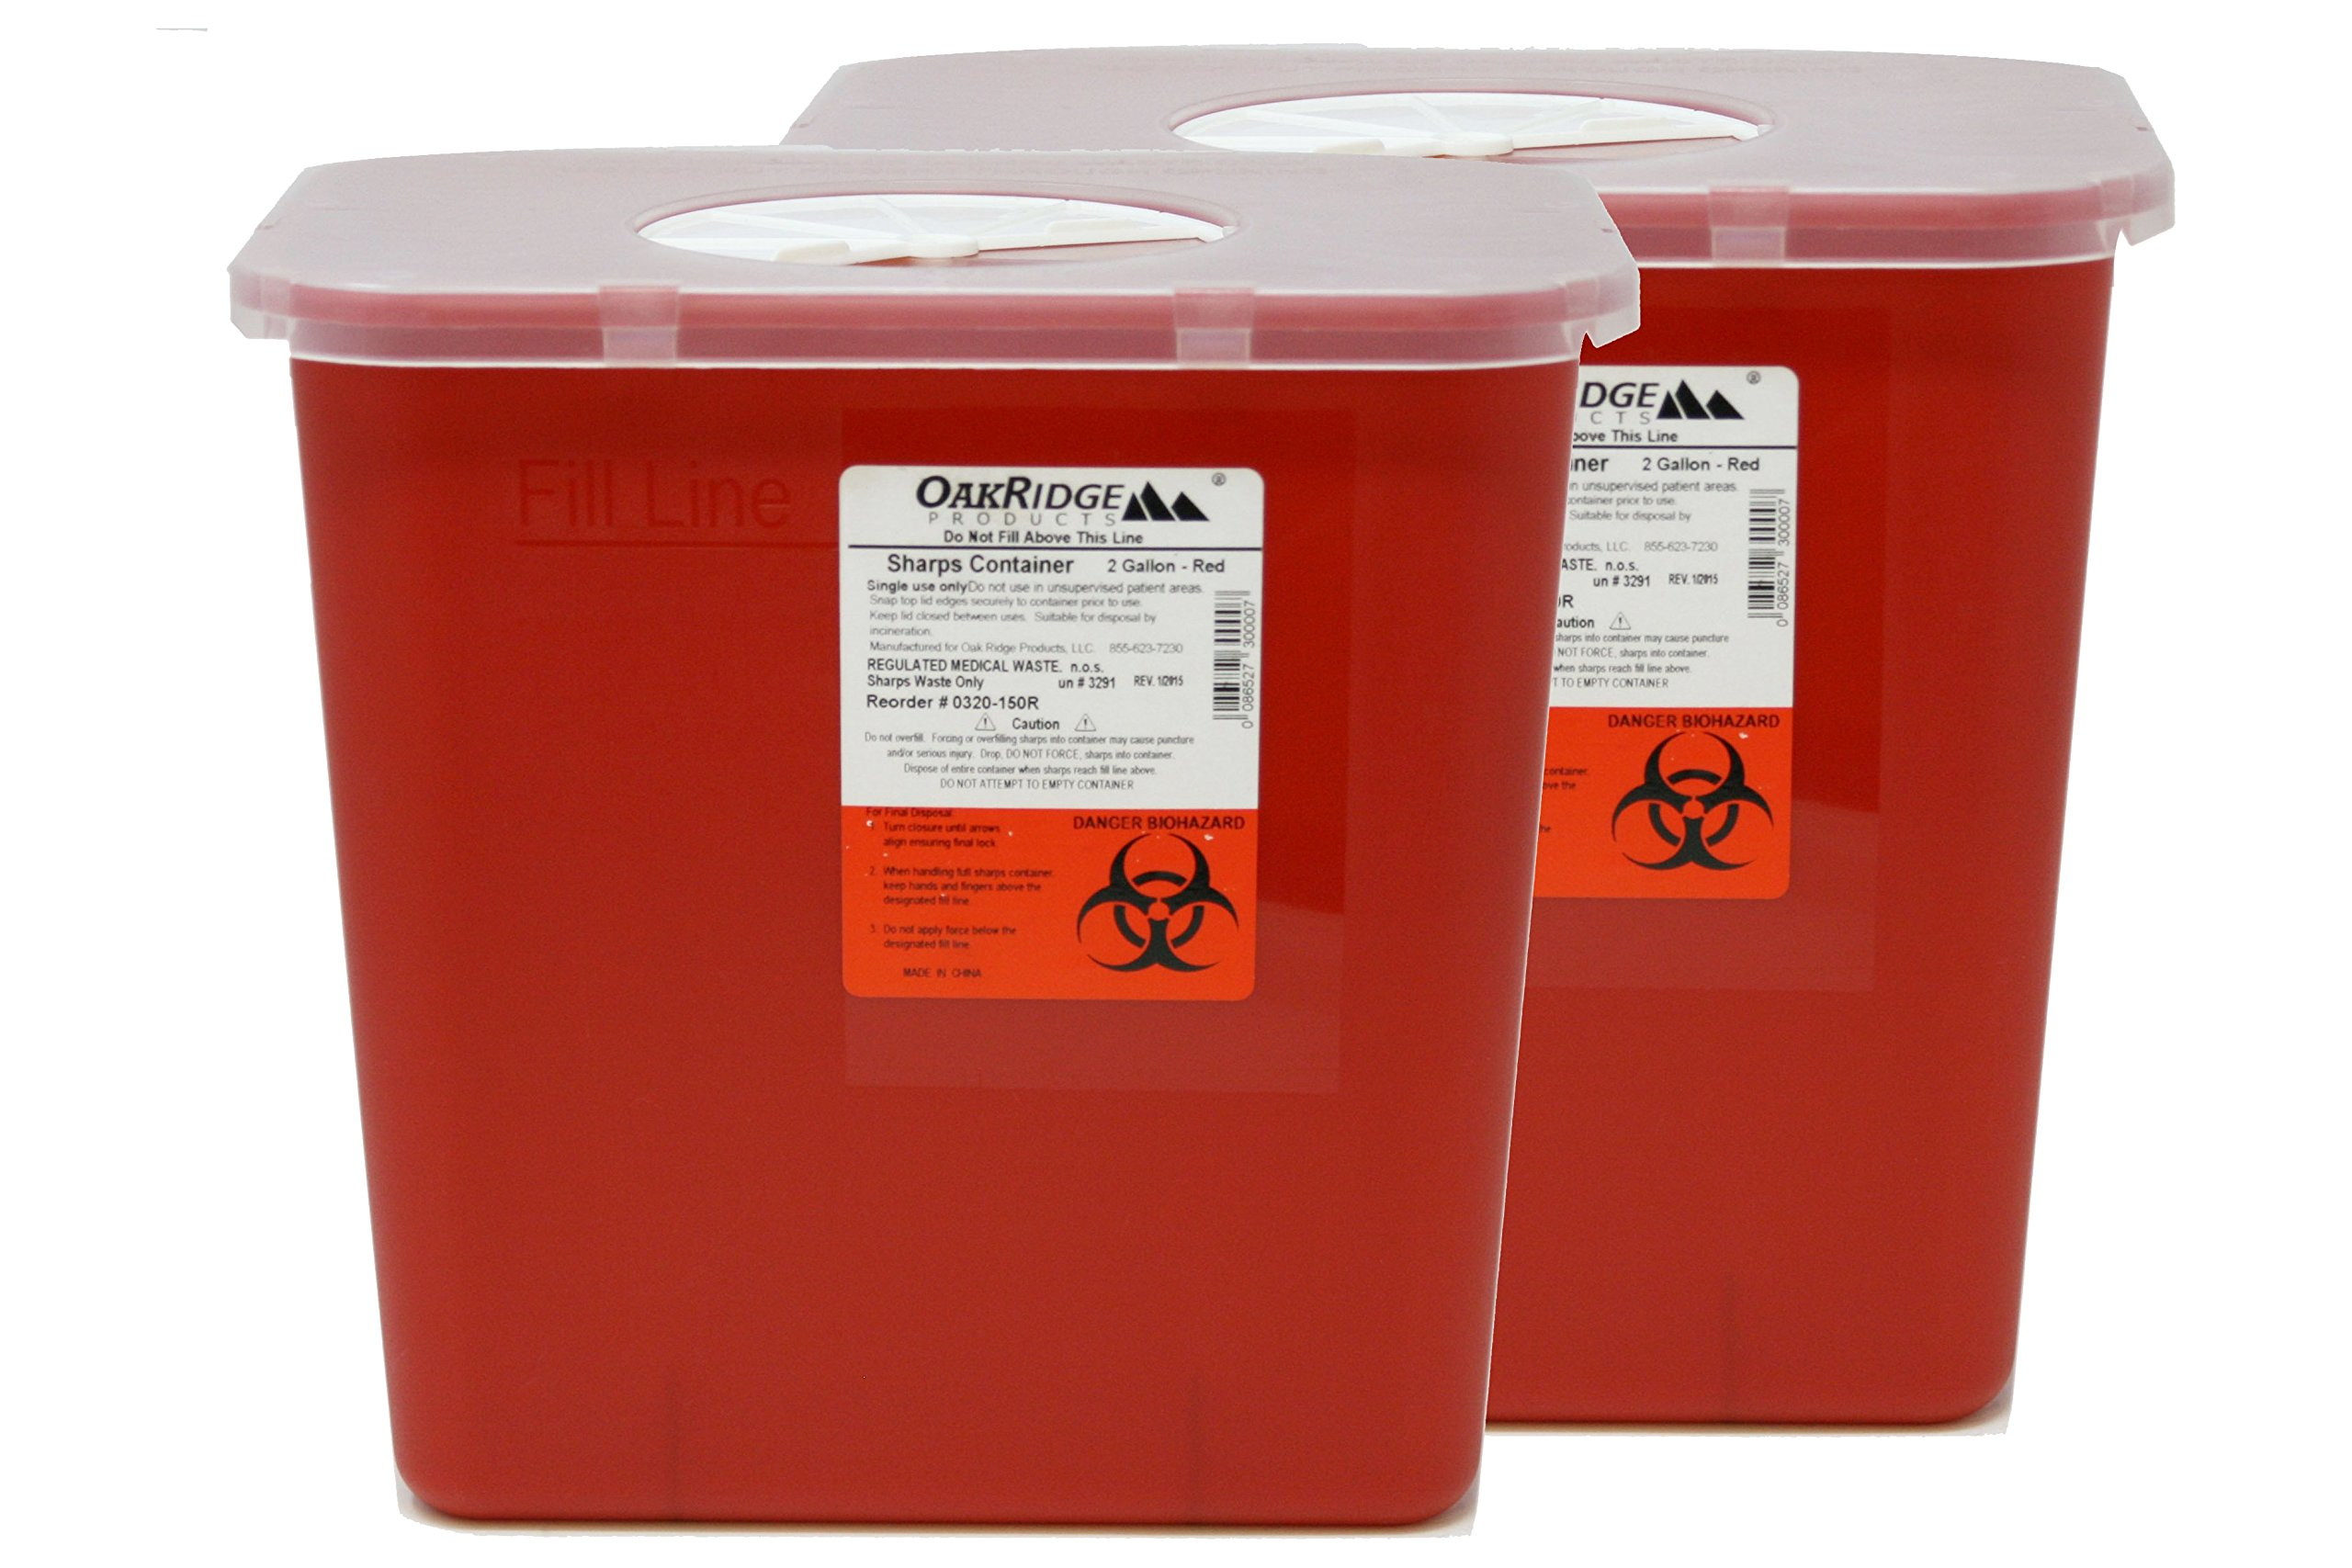 2 Gallon Size Sharps and Biohazard Waste Disposal Container (Pack of 2) by OakRidge Products by OakRidge Products